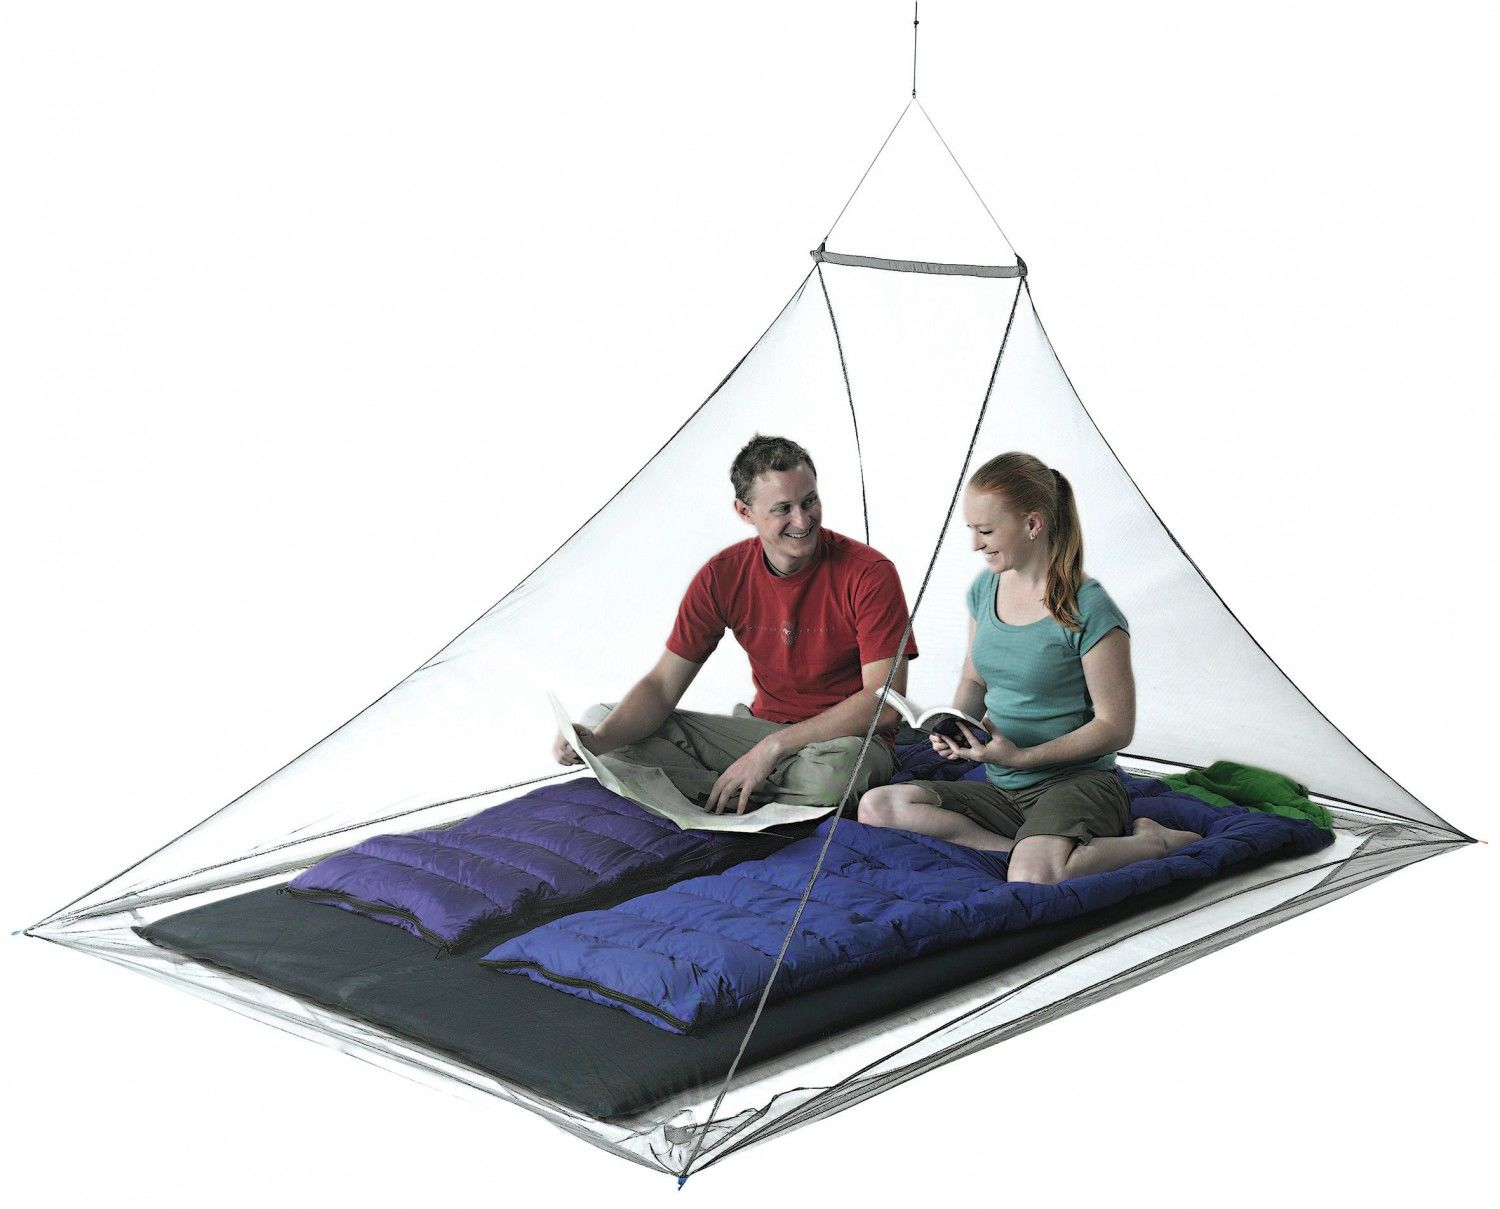 Sea to Summit Nano Mosquito Pyramid NET Double Schwarz, 2 Personen -Farbe Black,